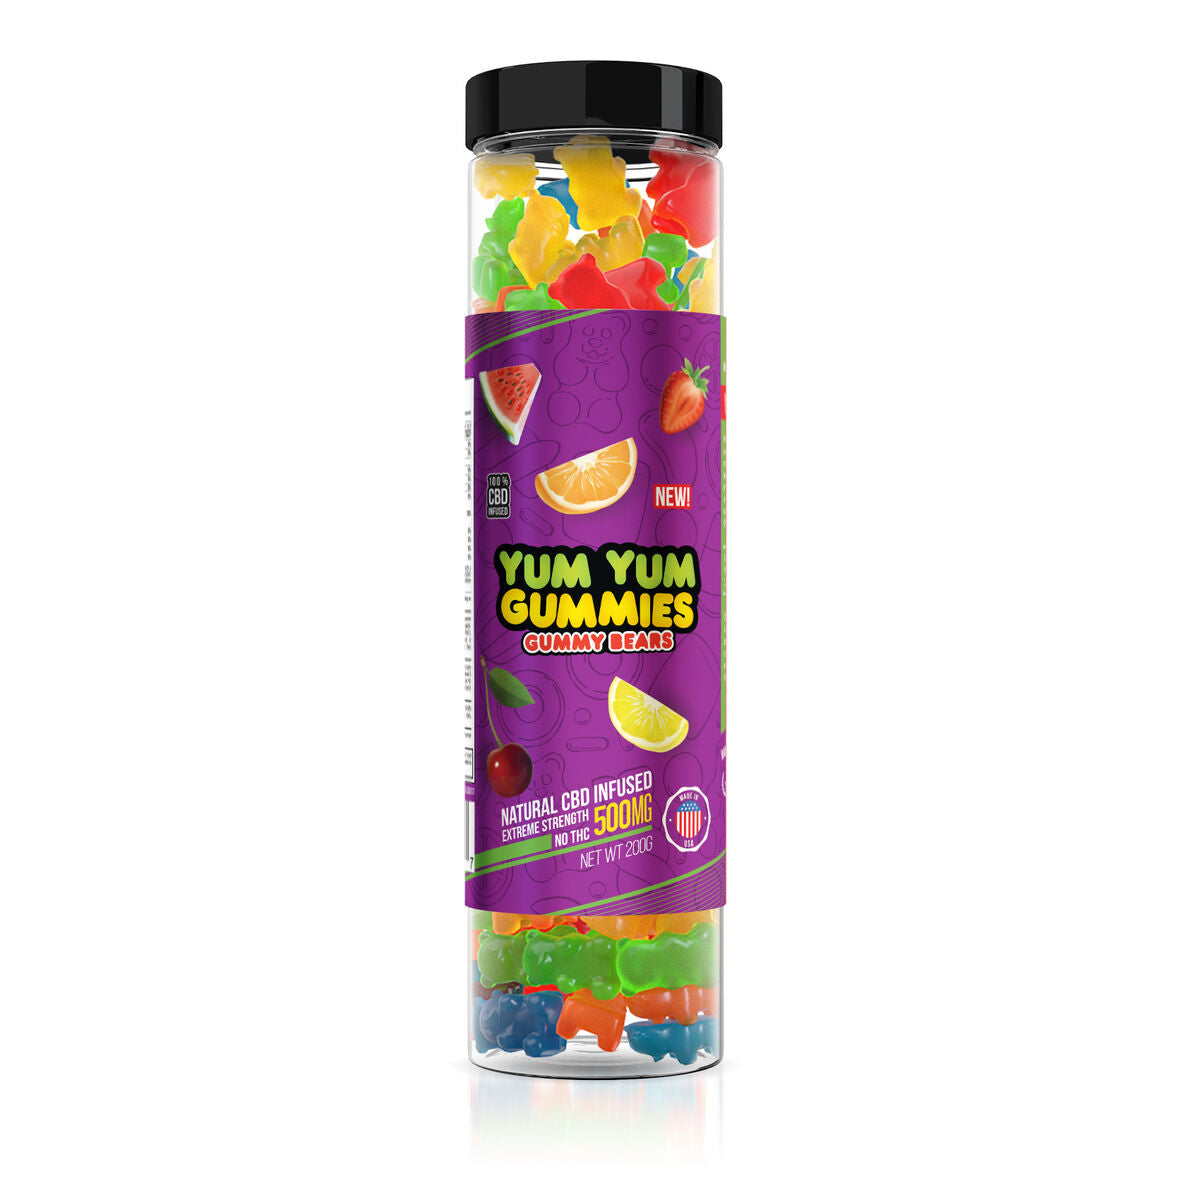 Yum Yum Gummies 500mg - CBD Infused Gummy Bears